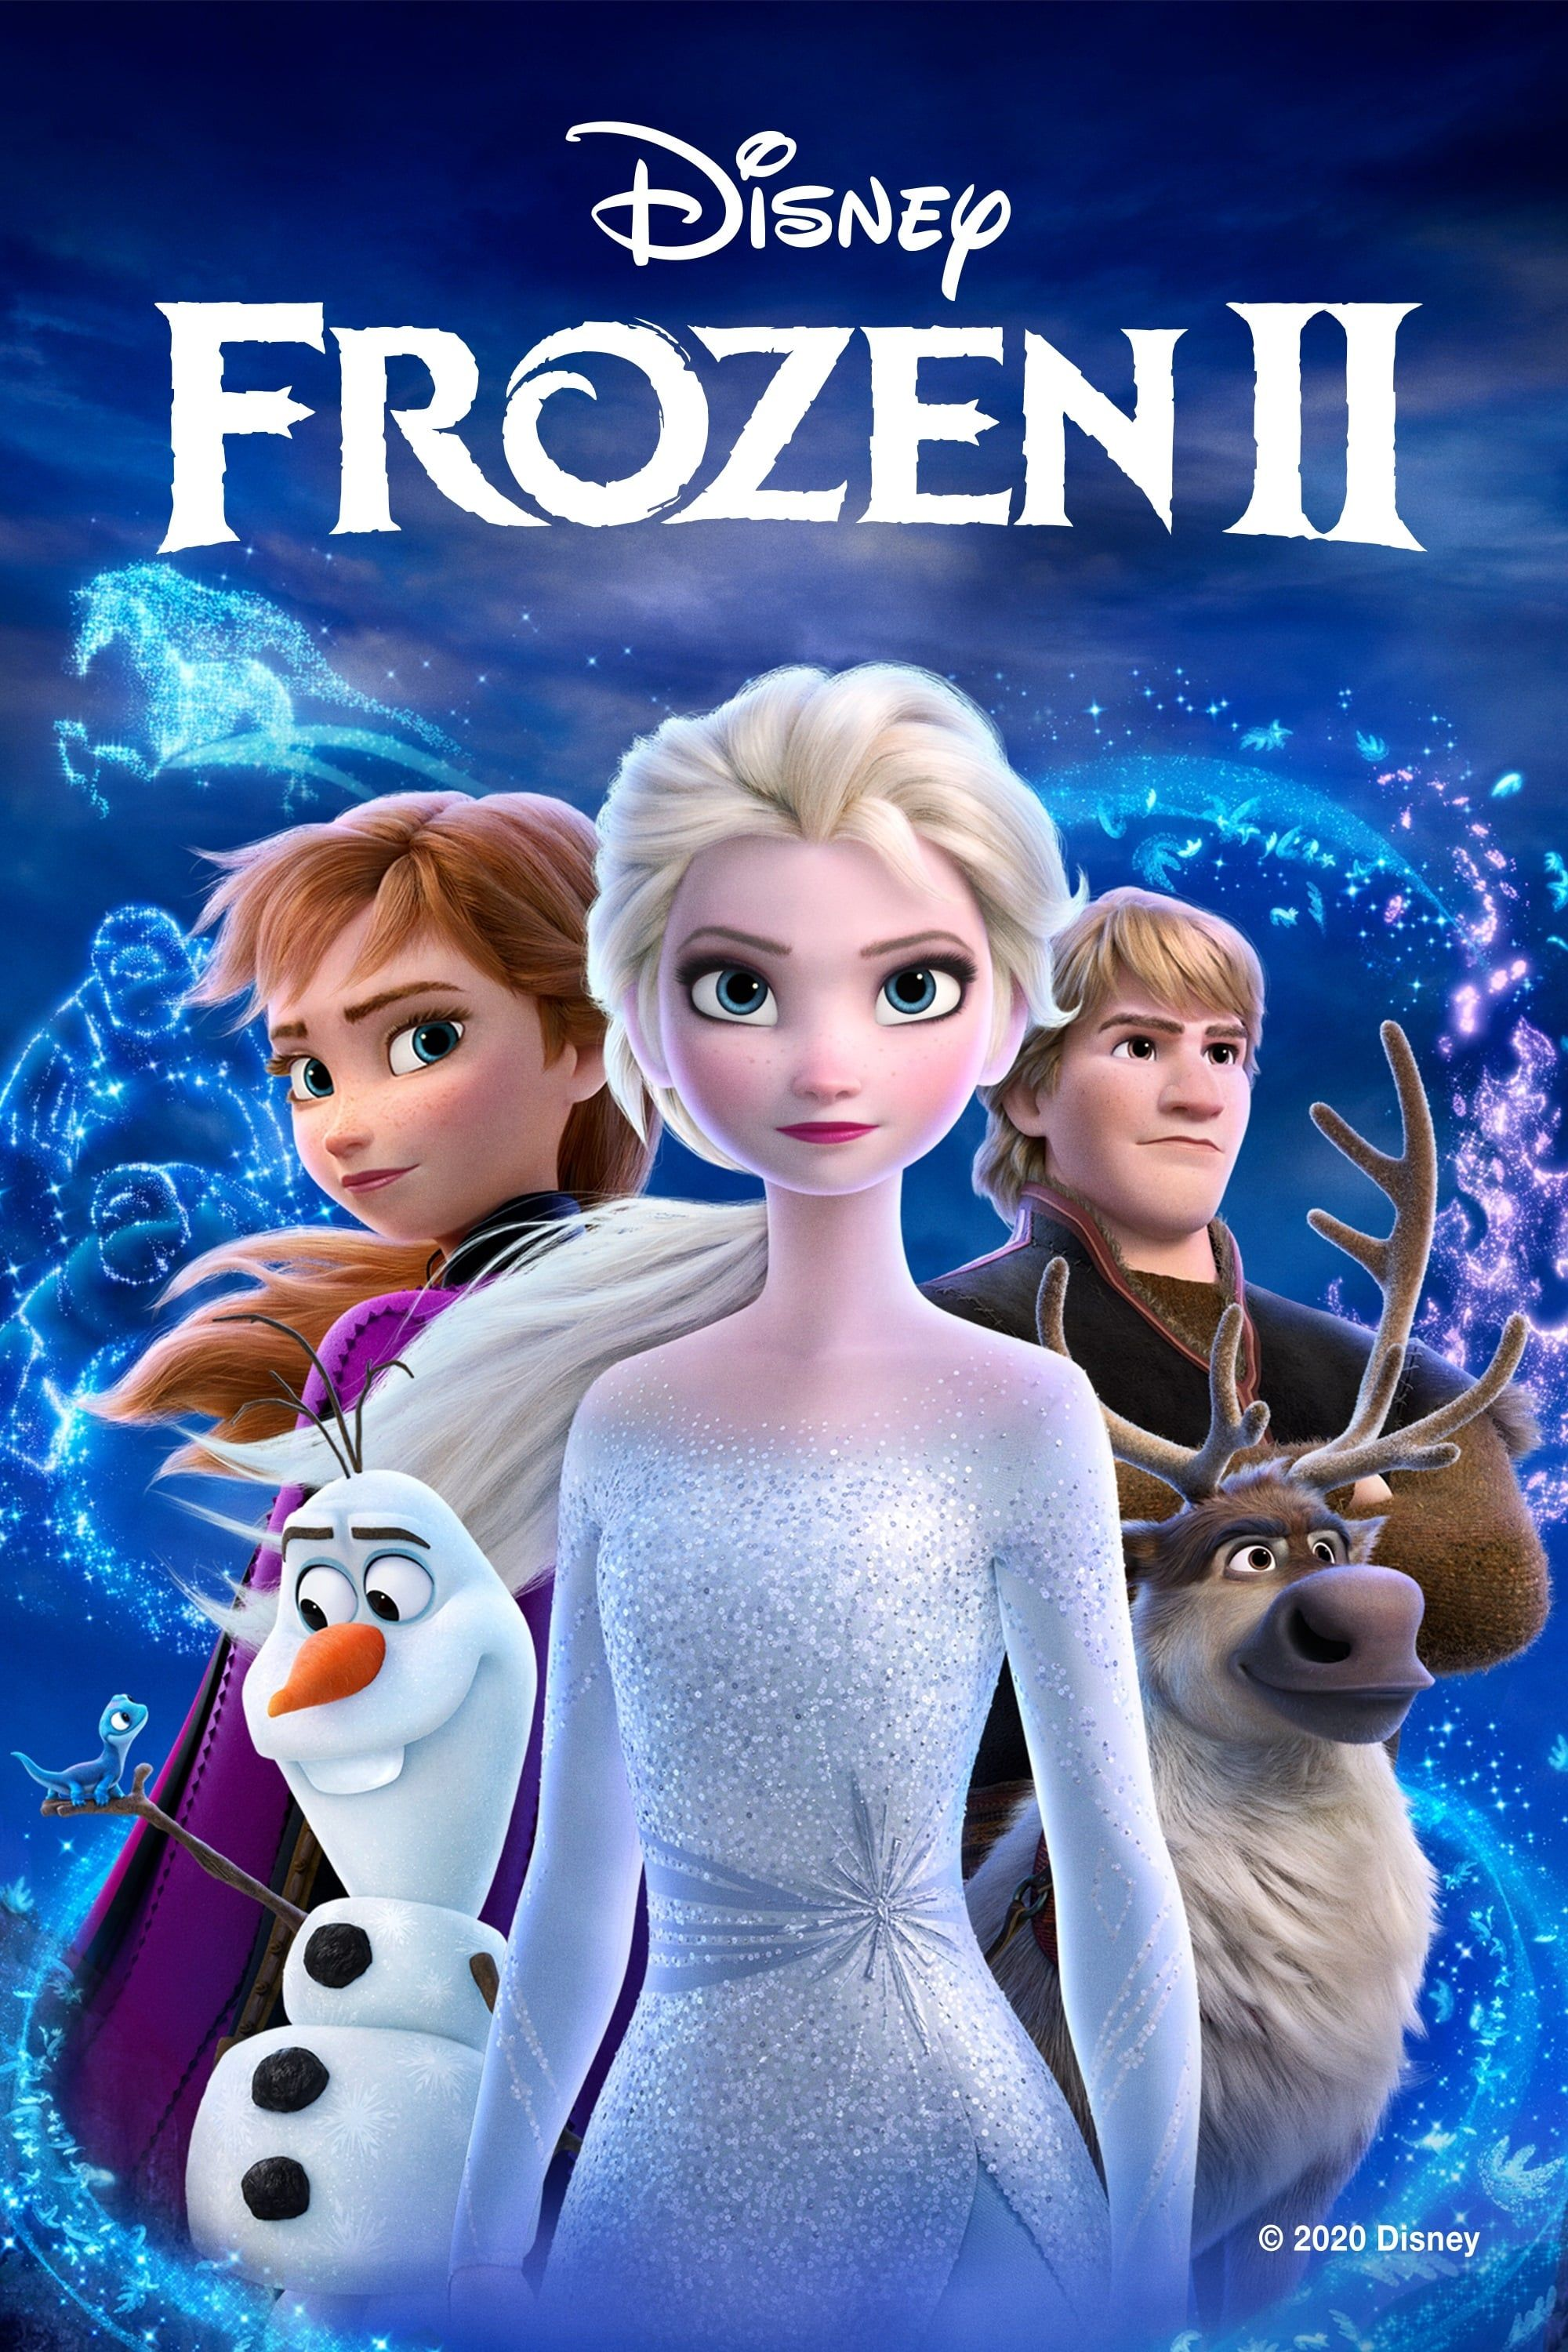 Frozen 2 in 2020 Free movies online, Disney animated